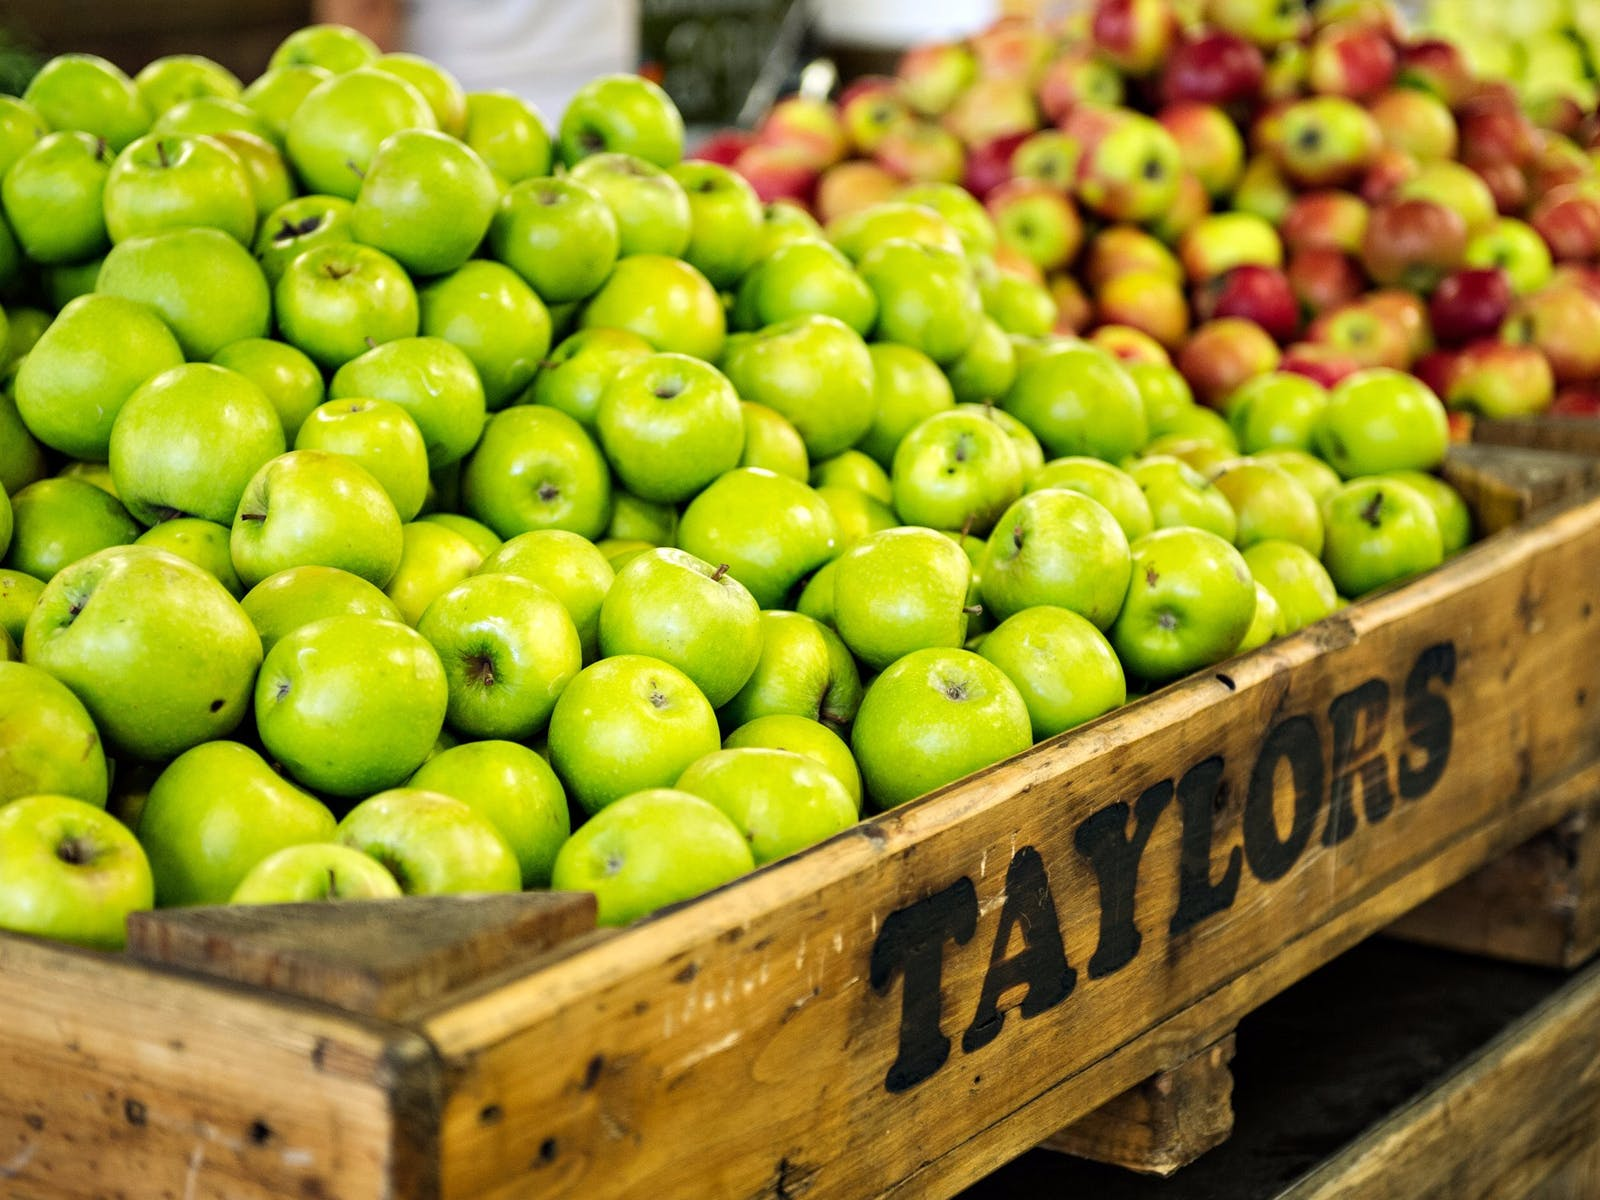 Apples from Taylors Orchards